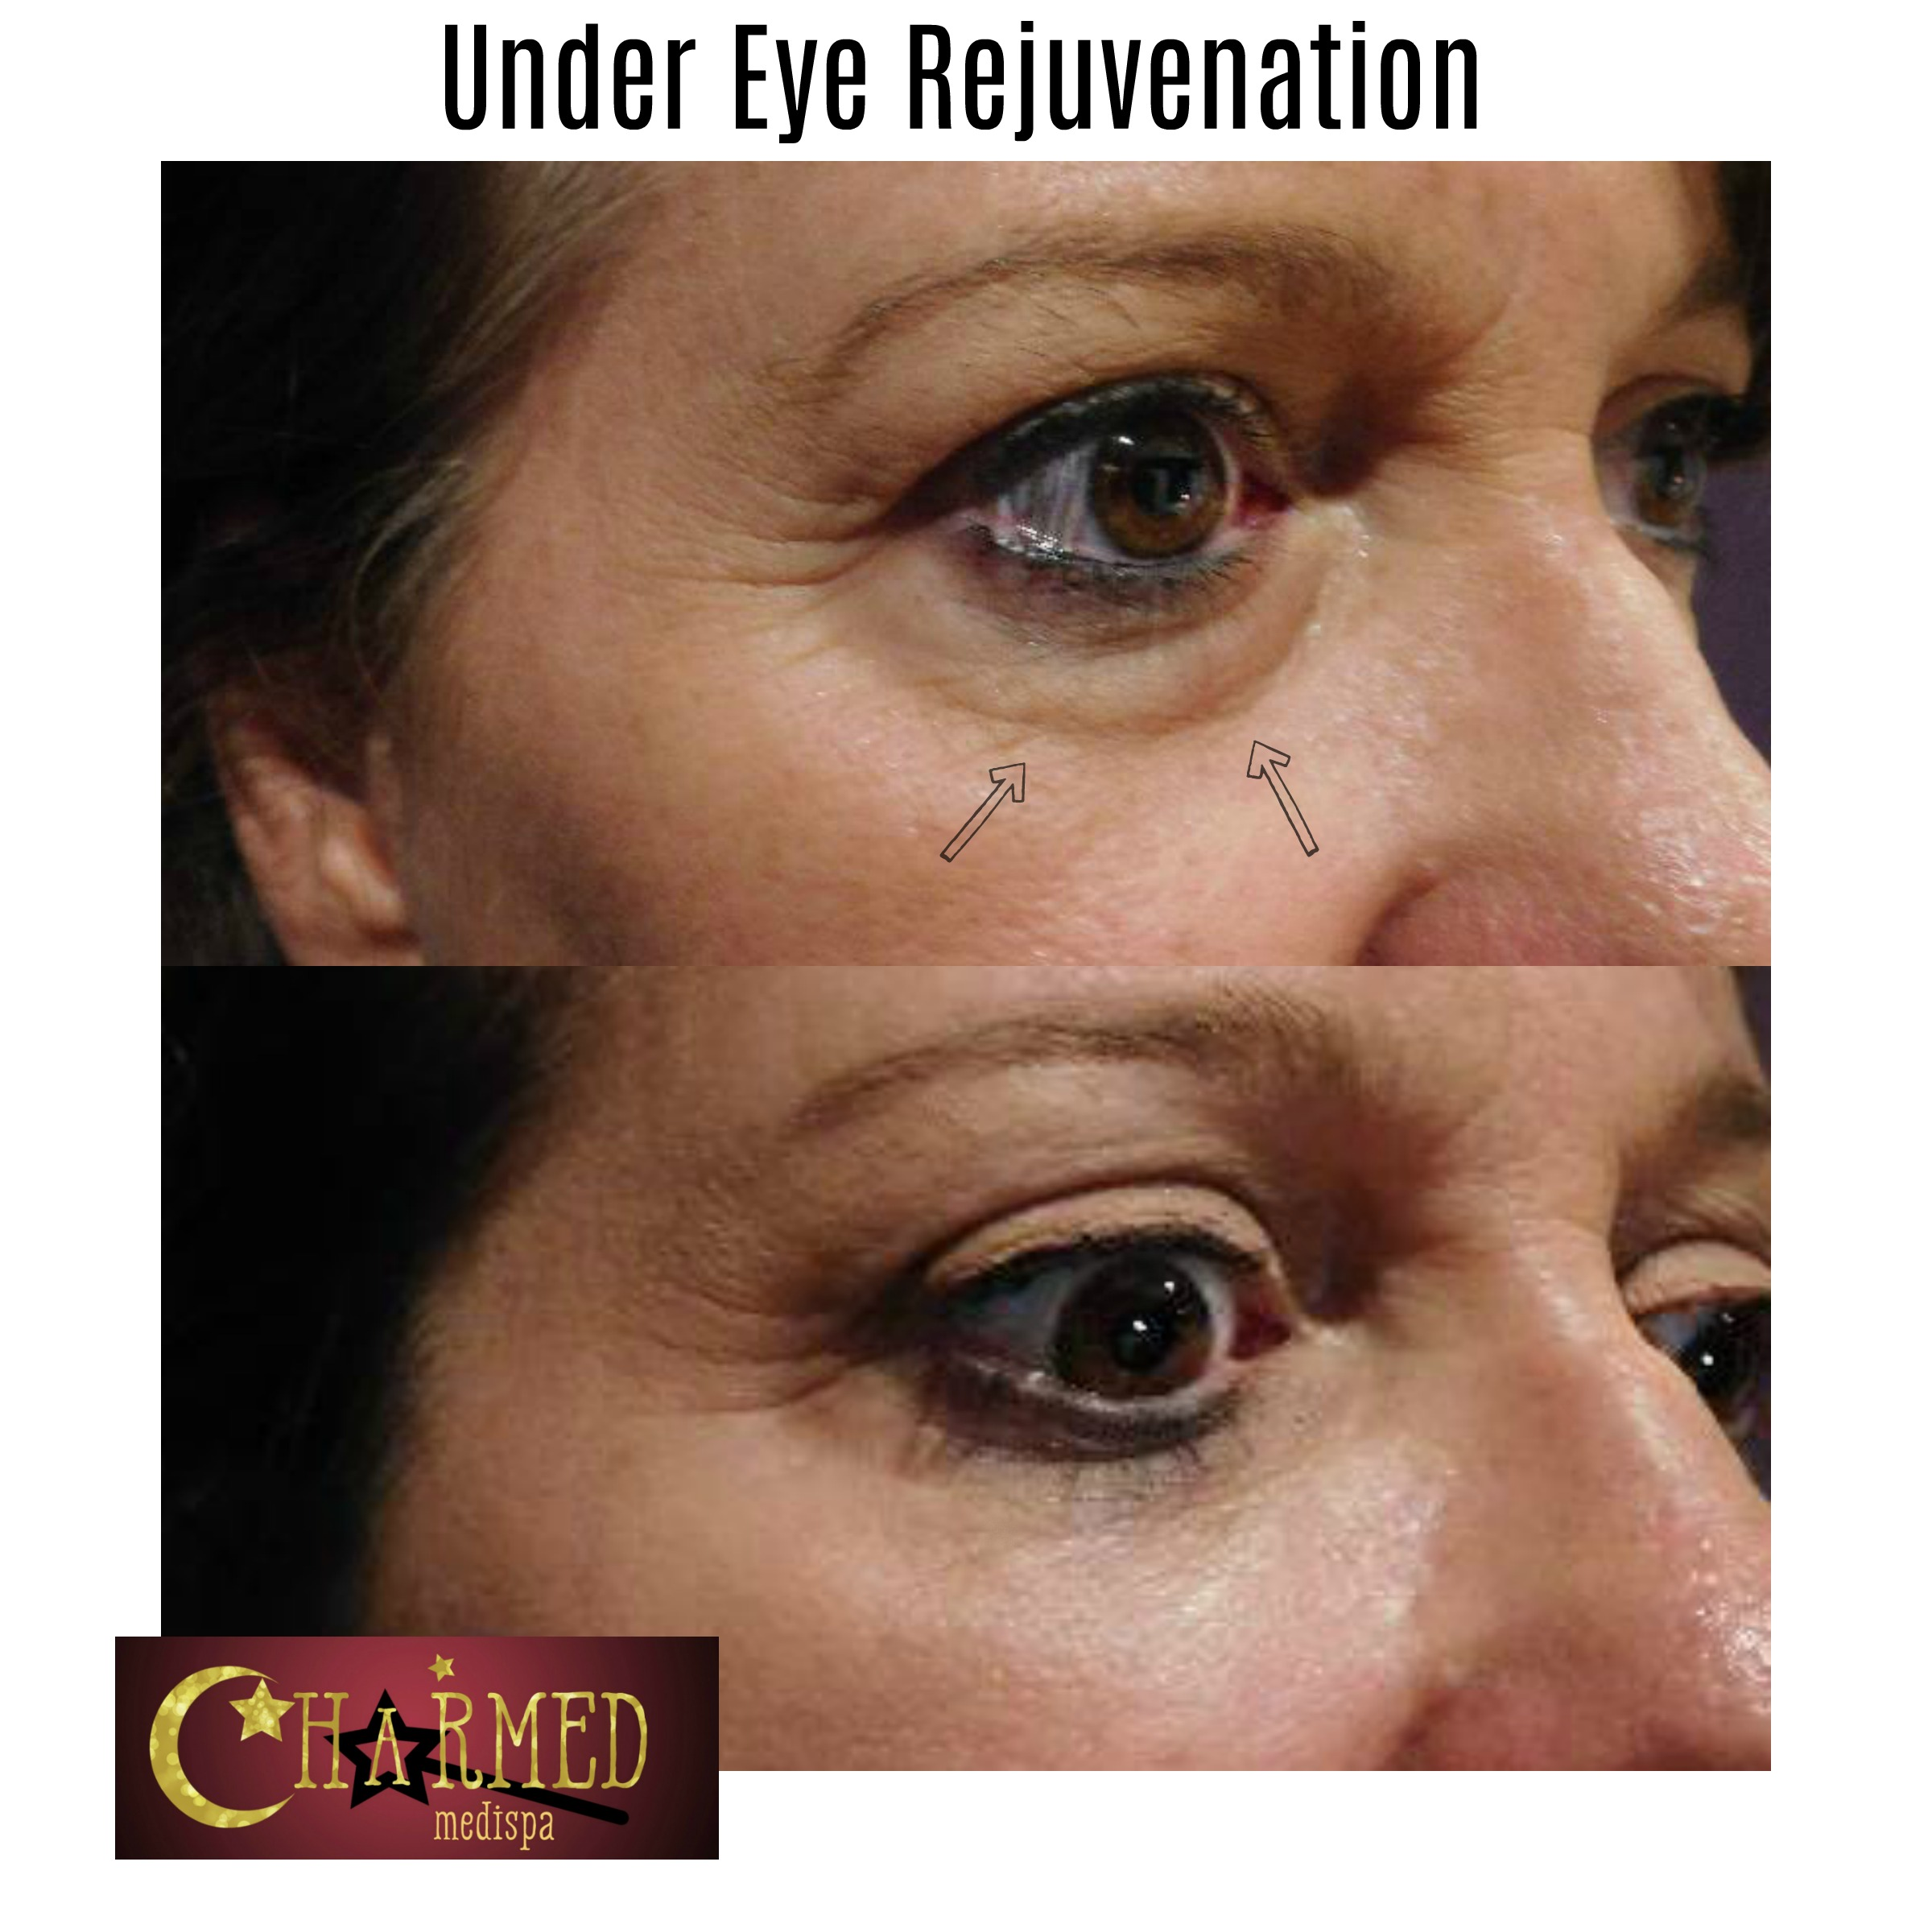 Under eye rejuvenation using filler has a dramatic result.